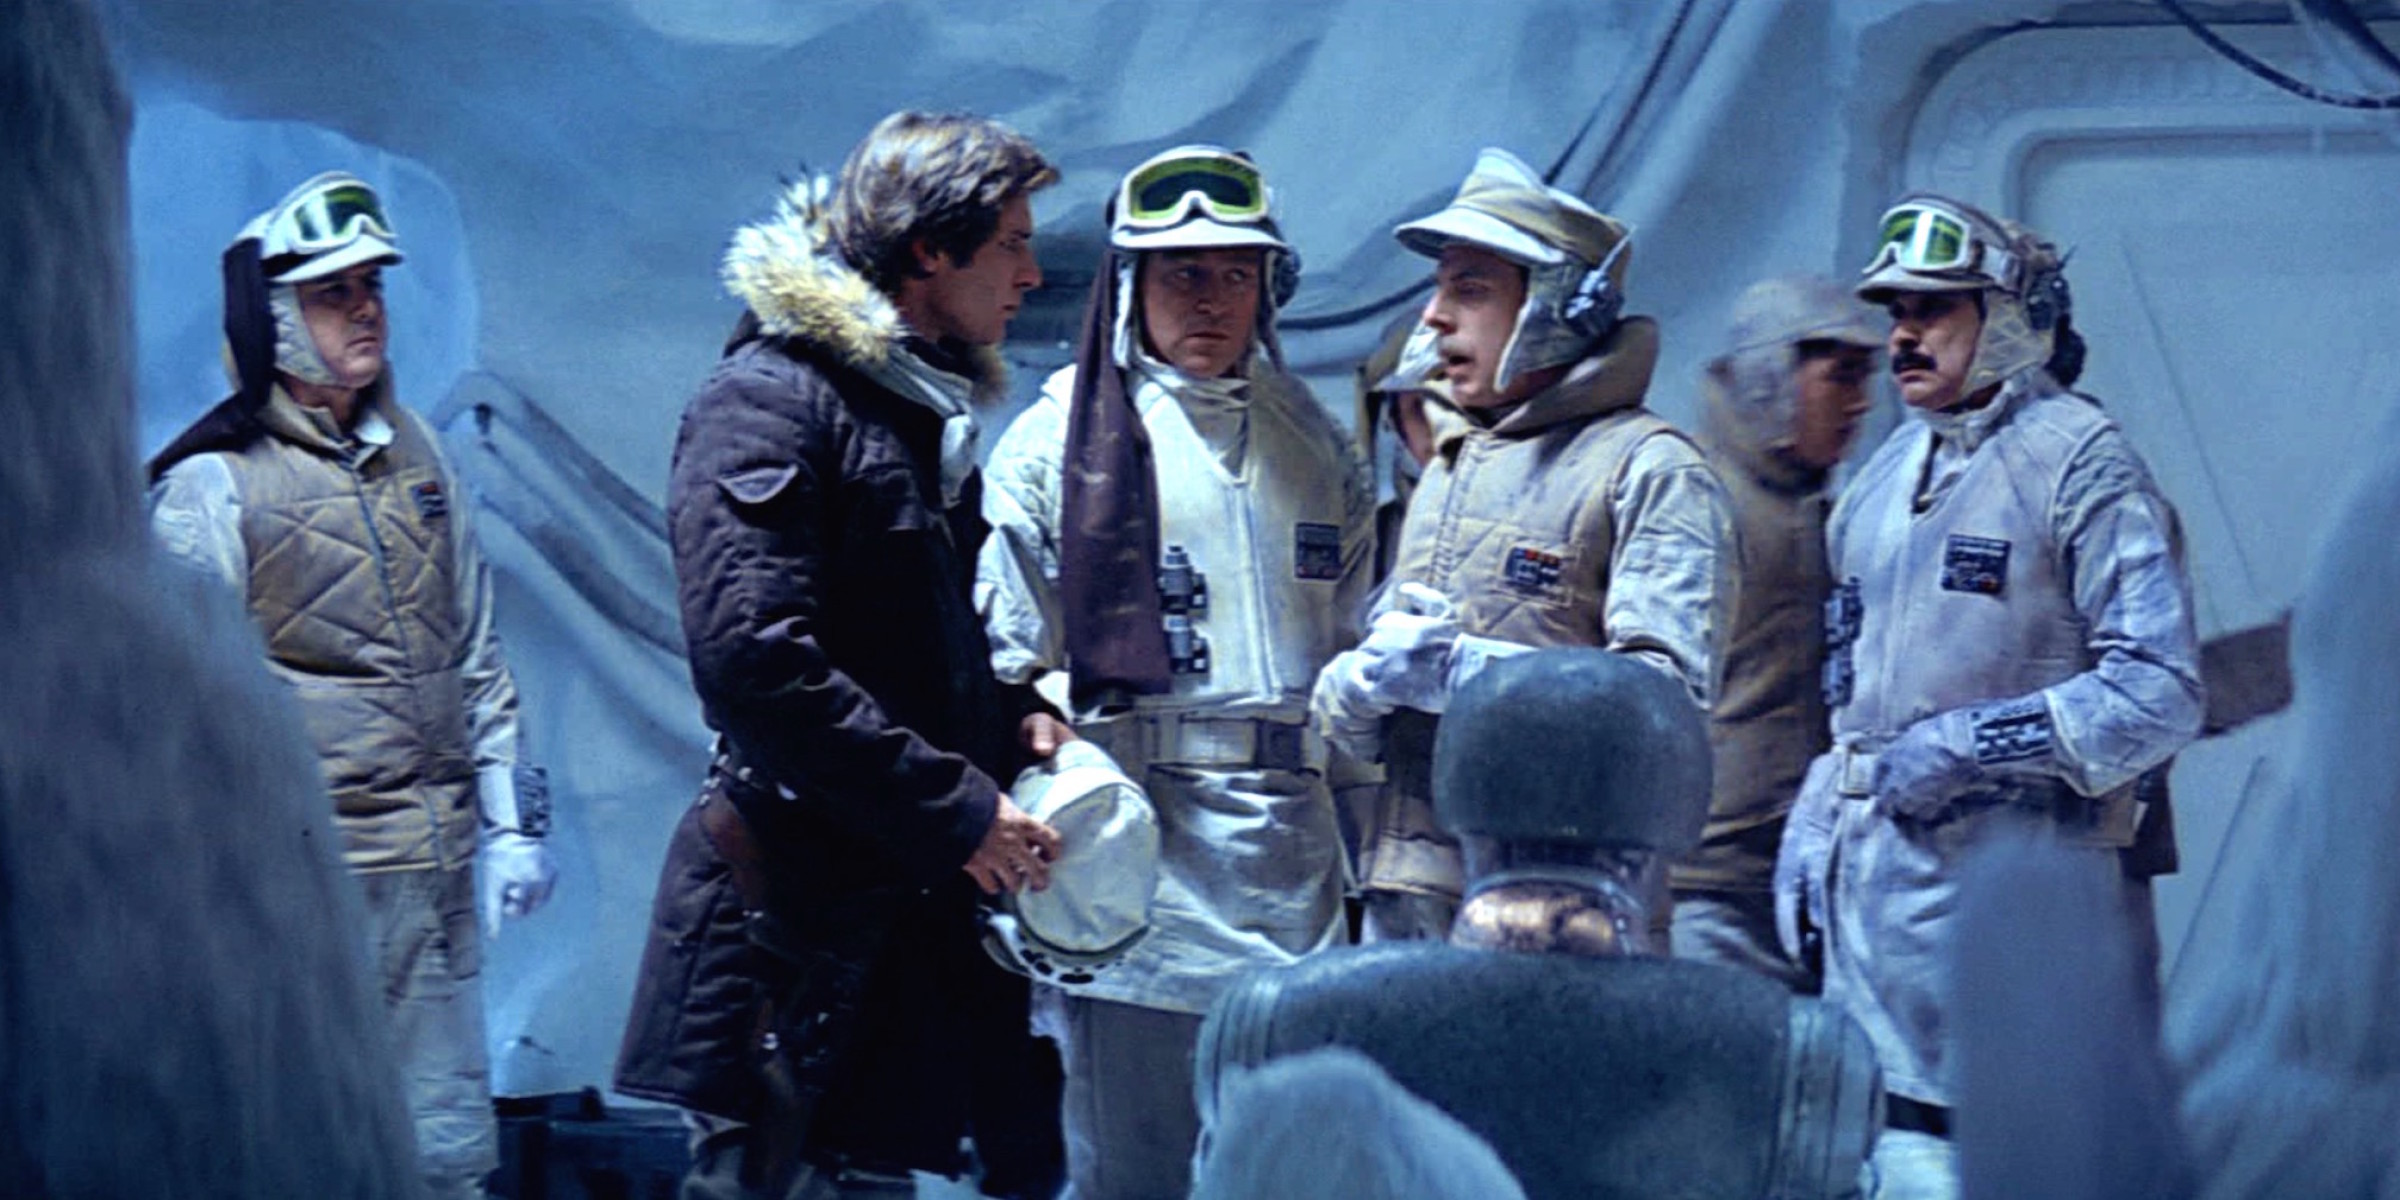 stand by ion control finding an actual hoth rebel vest. Black Bedroom Furniture Sets. Home Design Ideas